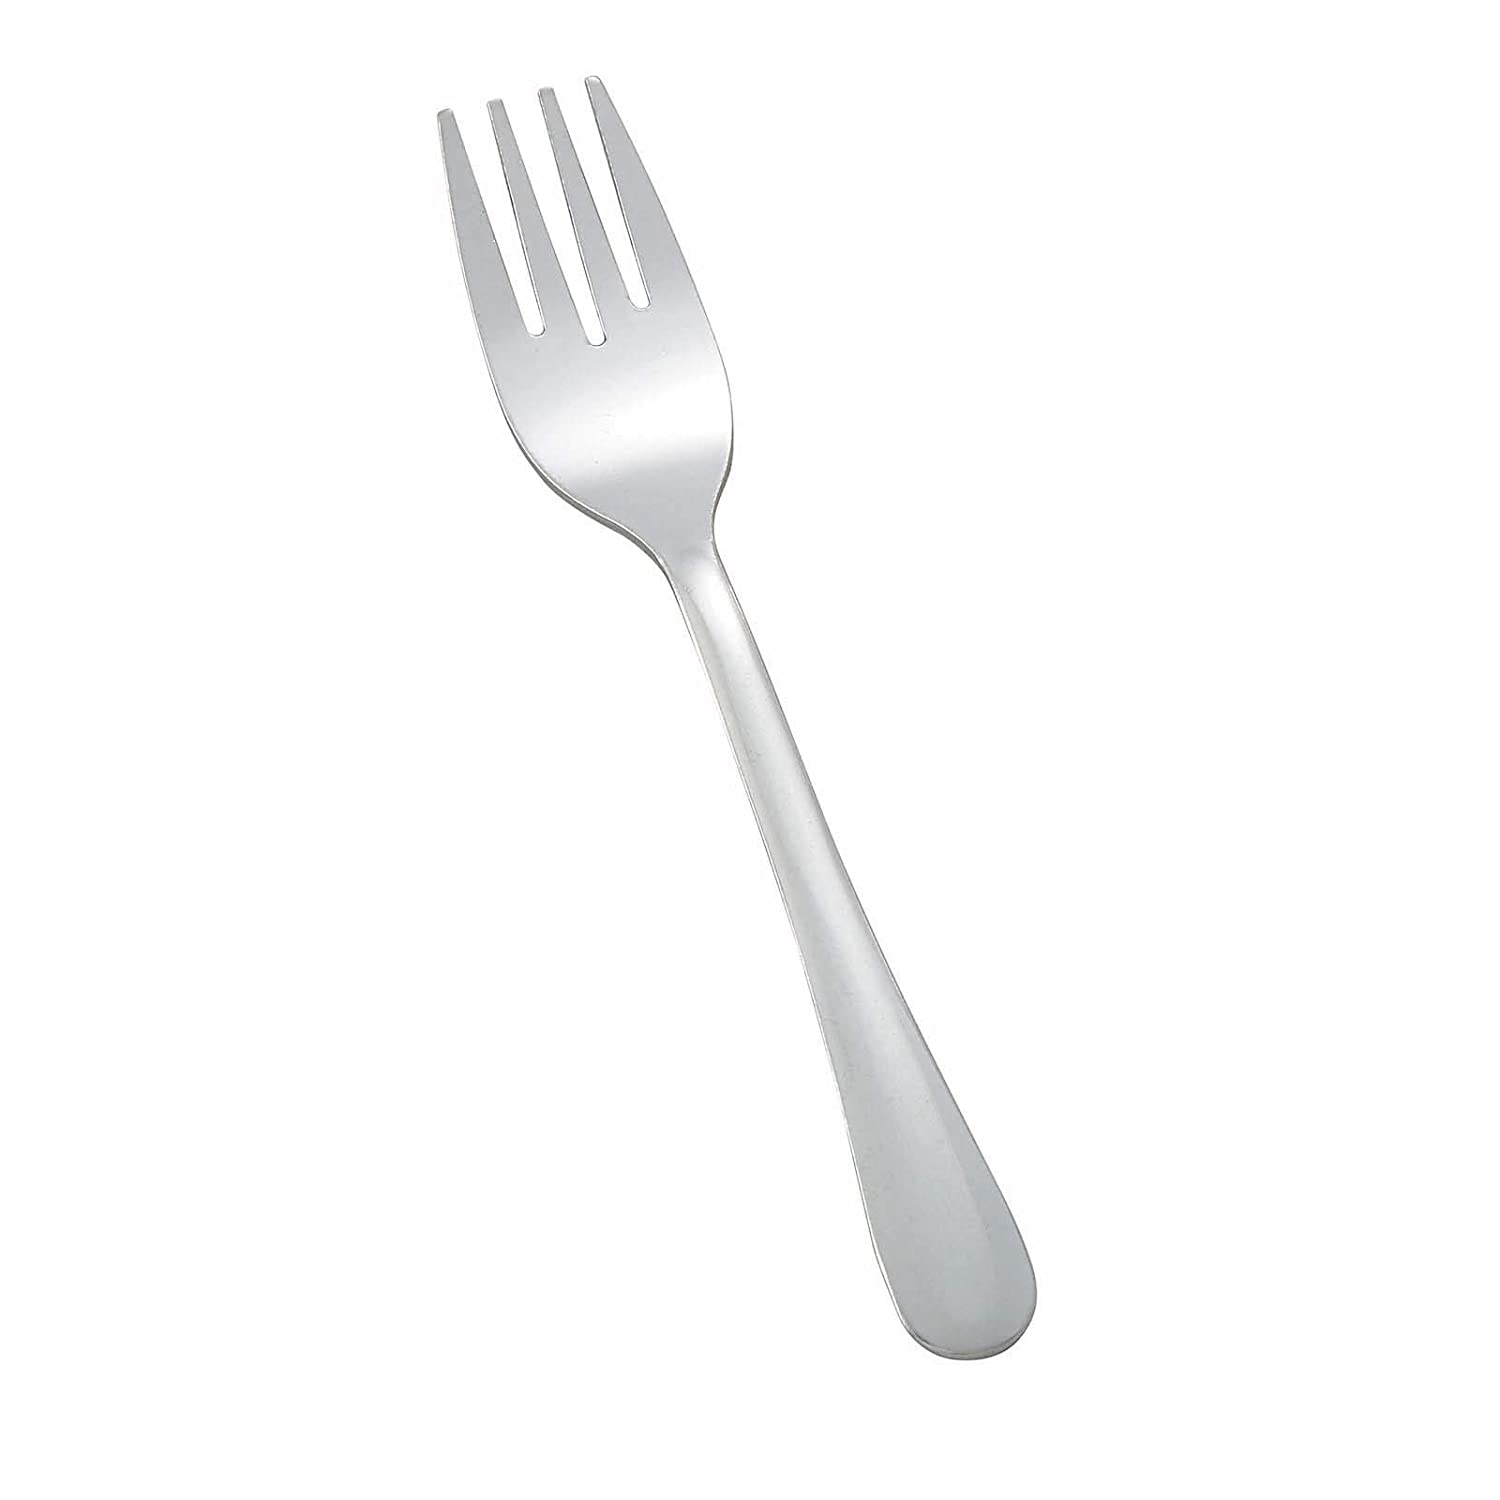 Winco 0012-06 12-Piece Windsor Heavy Weight Salad Fork Set, 18-0 Stainless Steel Winco USA HLT-312BATT40